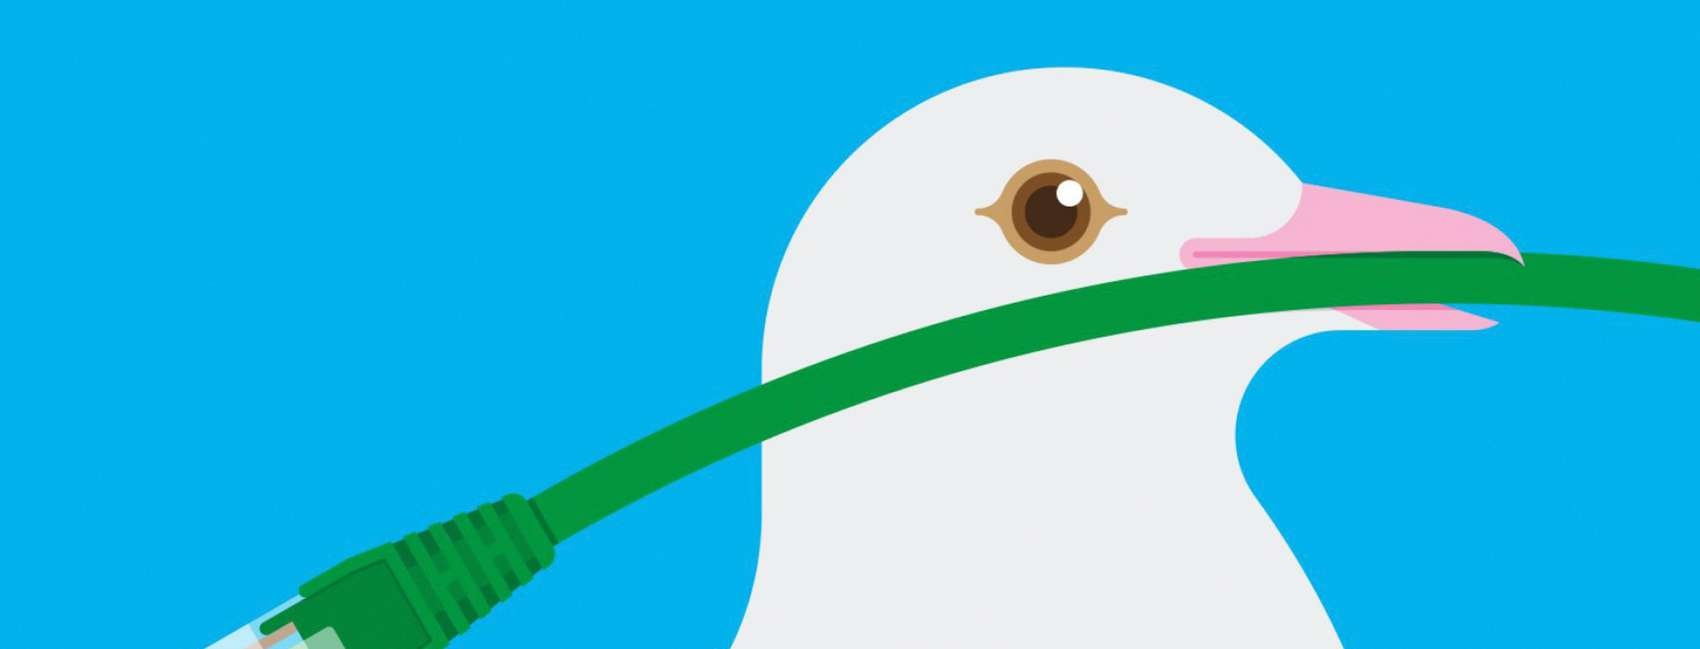 Illustration of a white dove with a computer cable in its beak